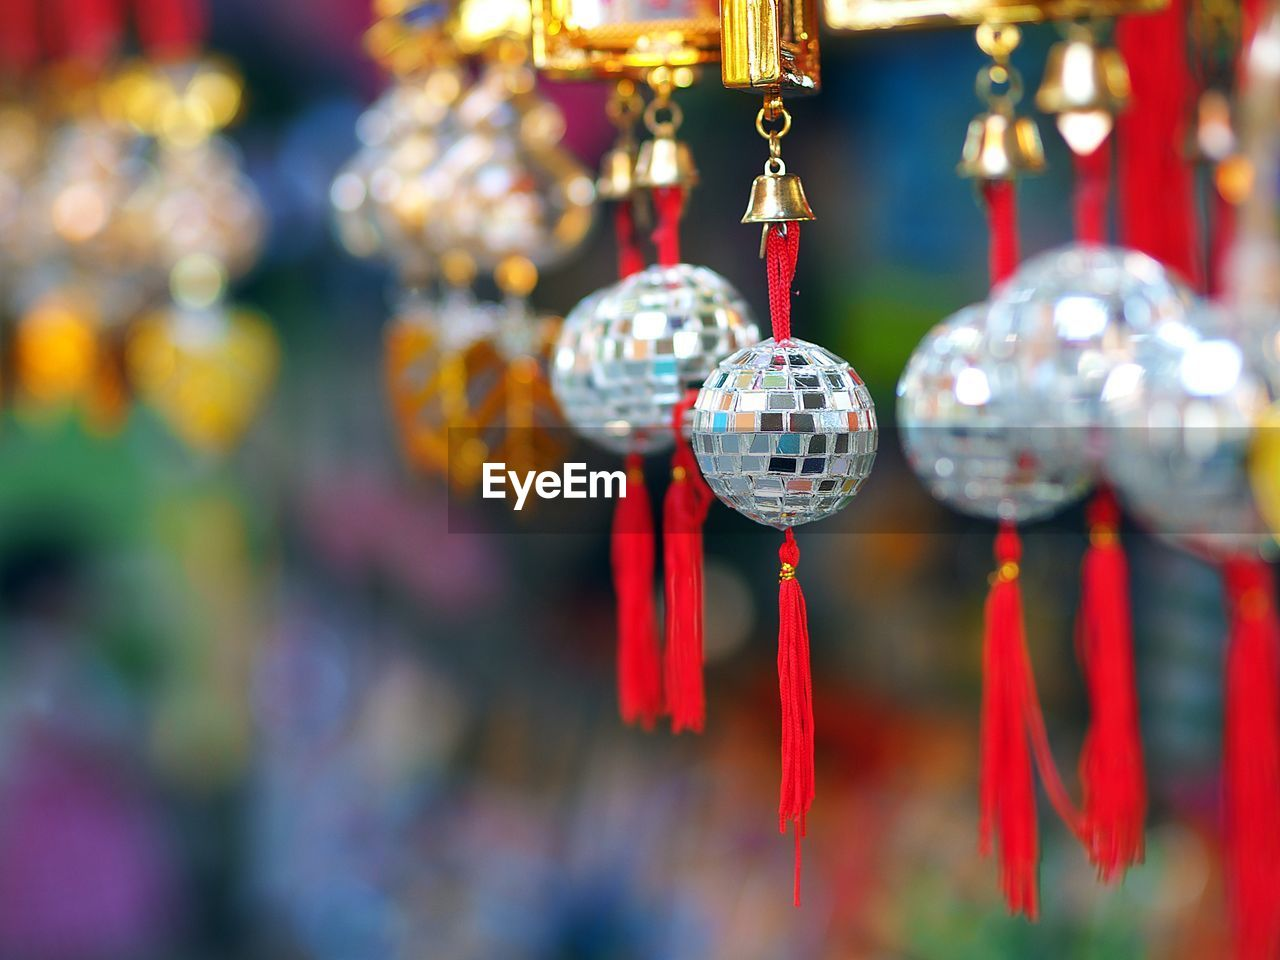 hanging, decoration, focus on foreground, close-up, for sale, market, red, retail, no people, selective focus, art and craft, creativity, craft, lighting equipment, choice, retail display, day, design, outdoors, shape, christmas ornament, consumerism, silver colored